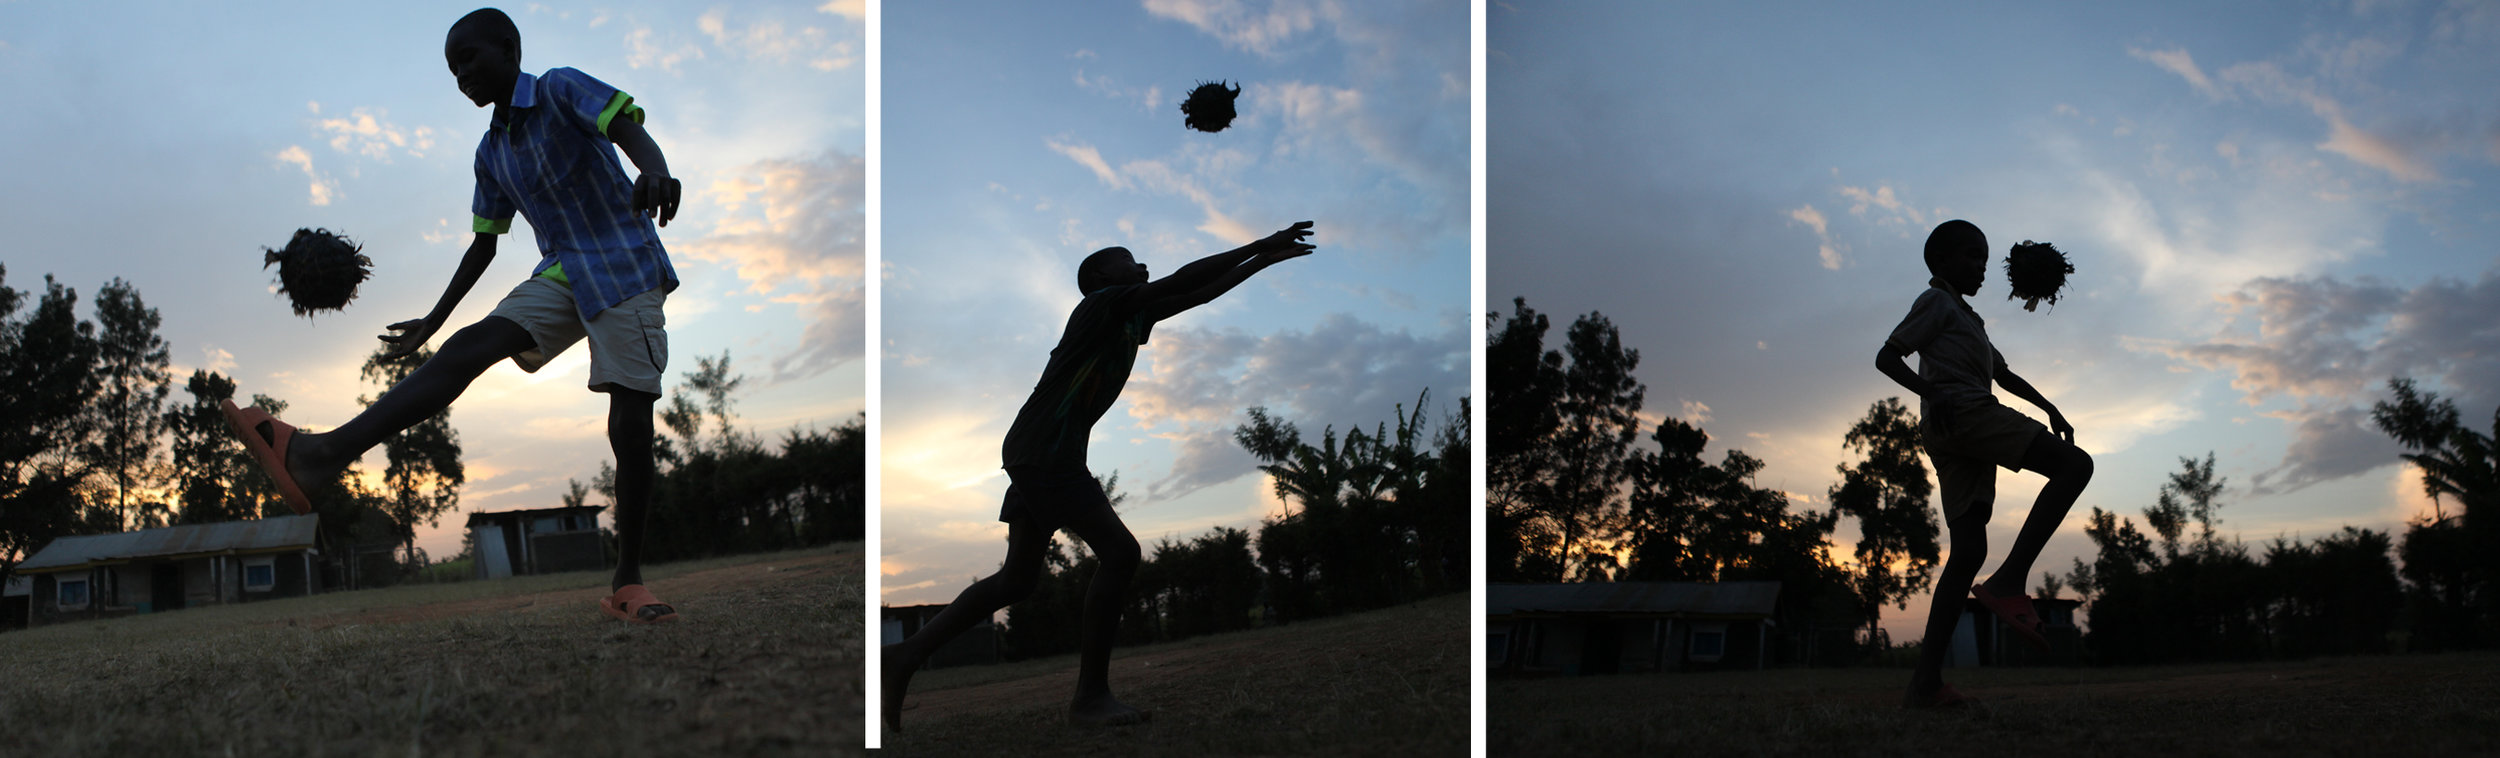 A Kenyan boy plays with a handmade soccer ball. David took this series of pictures on a trip to serve BlueSky.